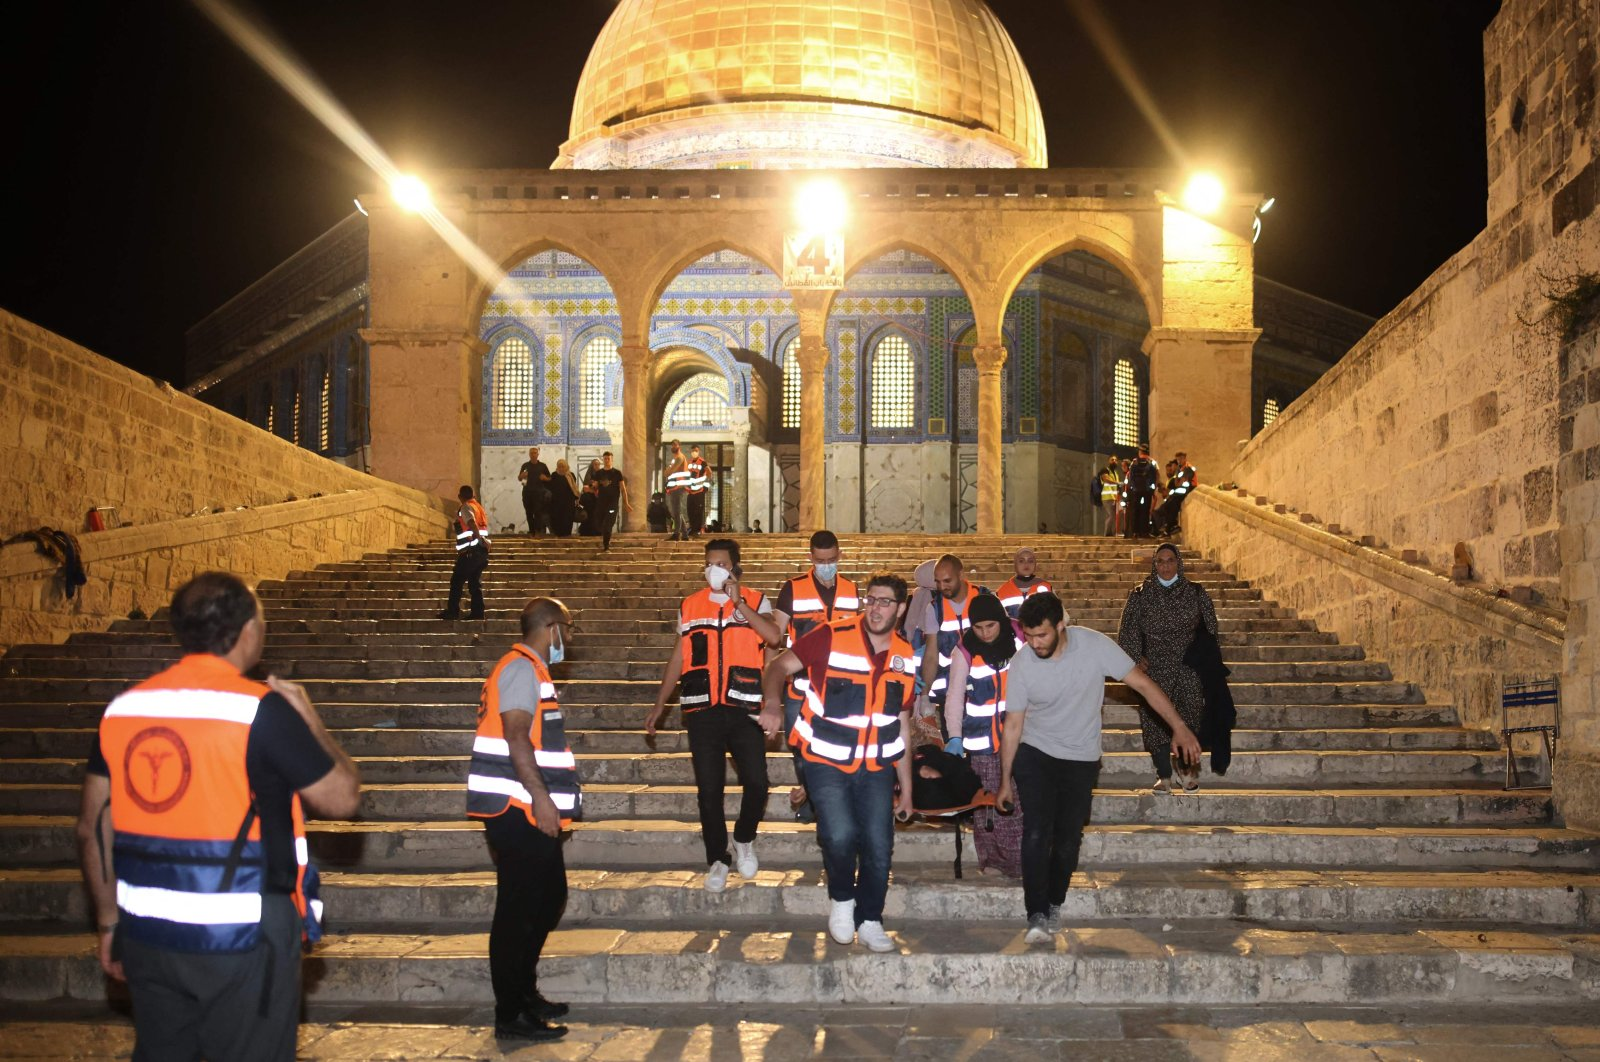 Palestinian medics evacuate a wounded person during attacks of Israeli security forces on Palestinian protestors in Jerusalem's al-Aqsa mosque compound, May 10, 2021. (AFP Photo)